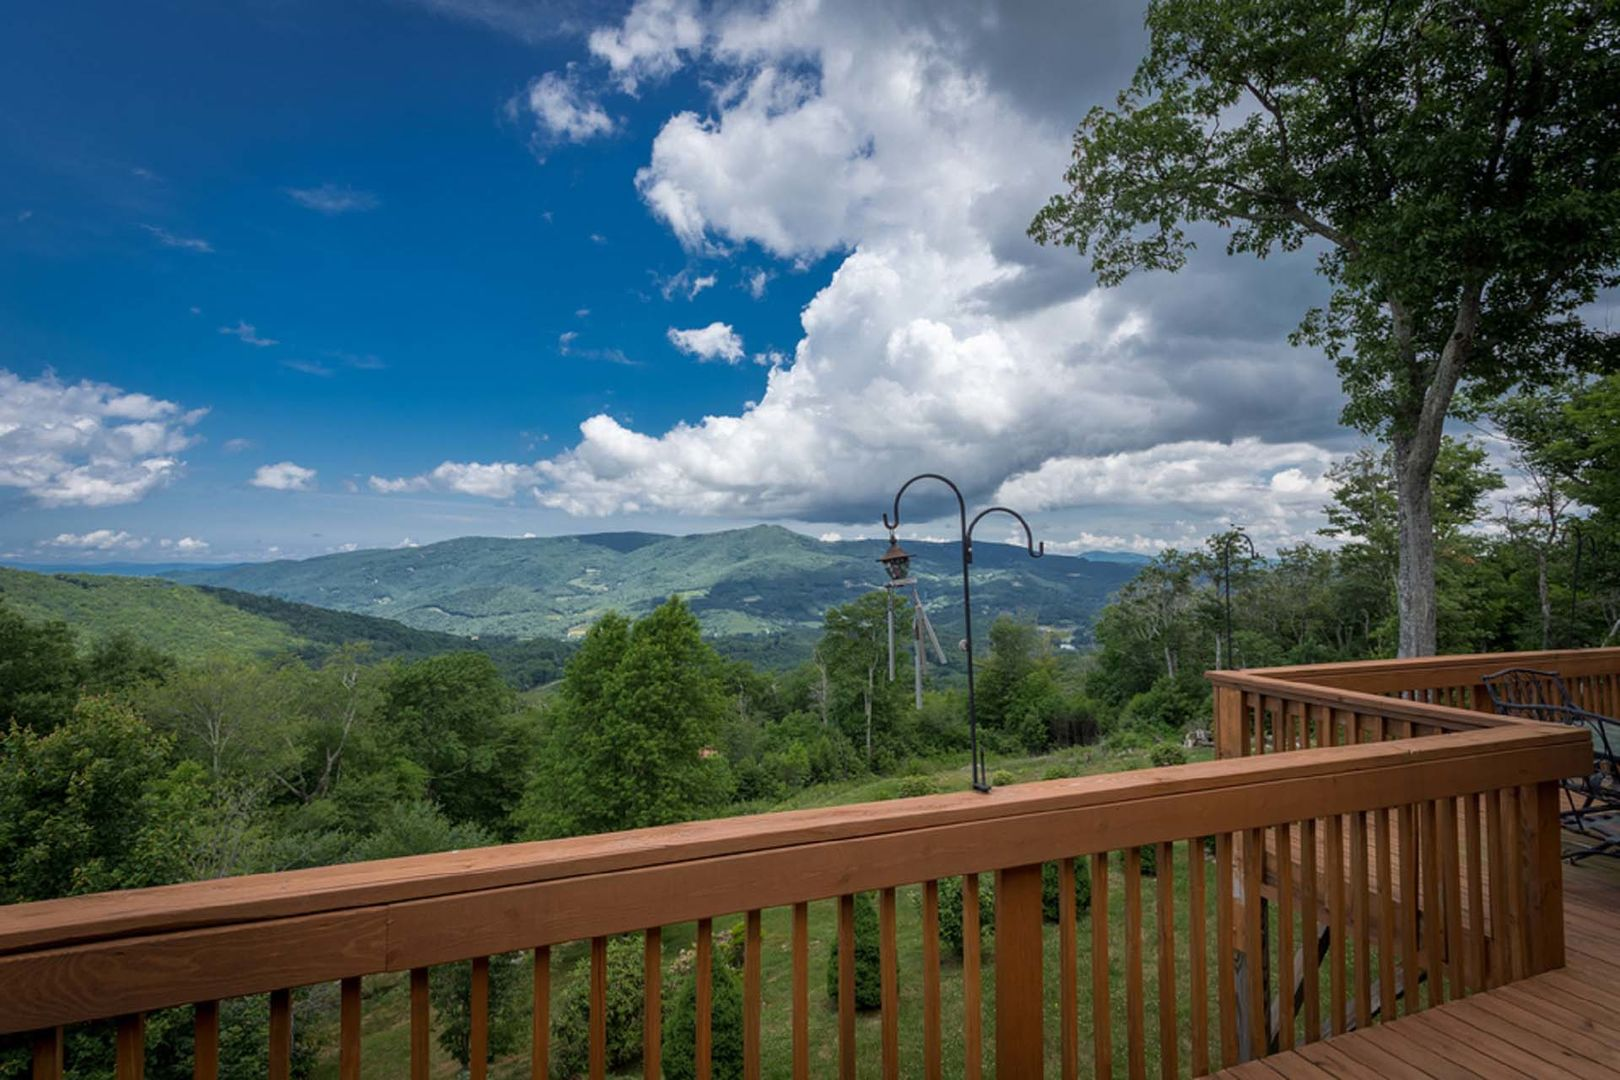 Views of the mountains from the deck